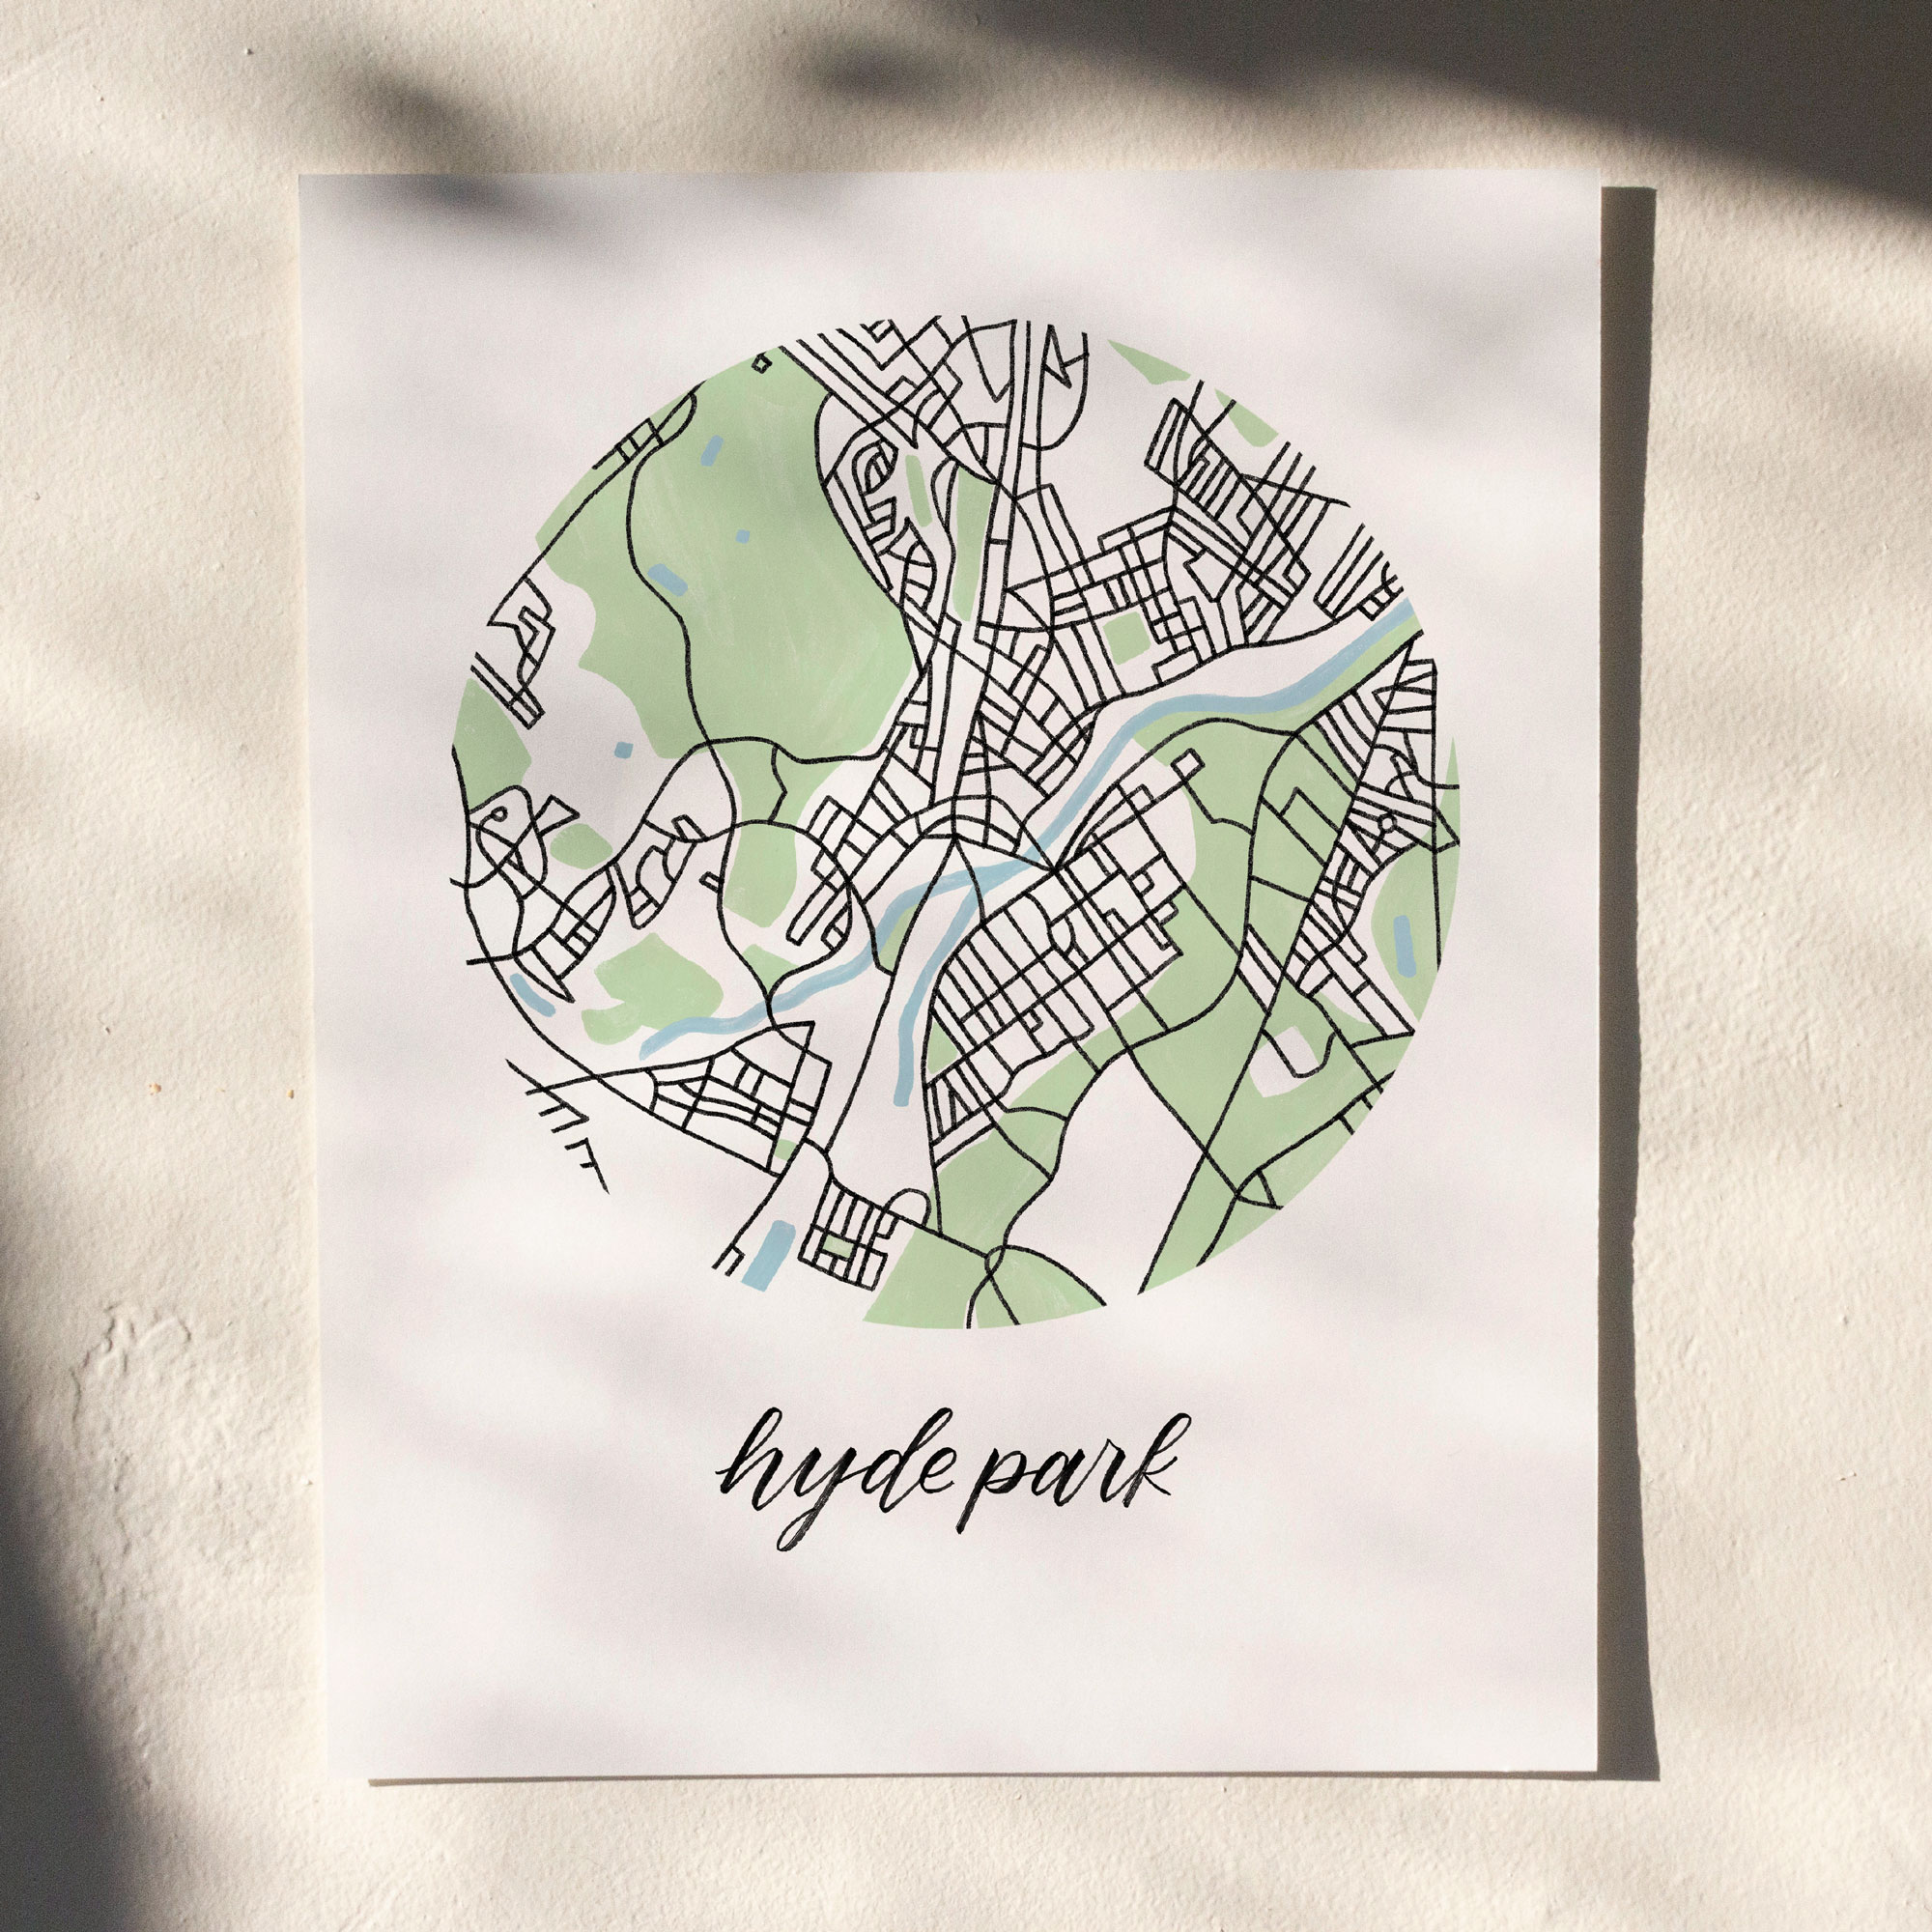 Hyde Park, Boston Map Print hanging on white wall with leaf shadows across the image